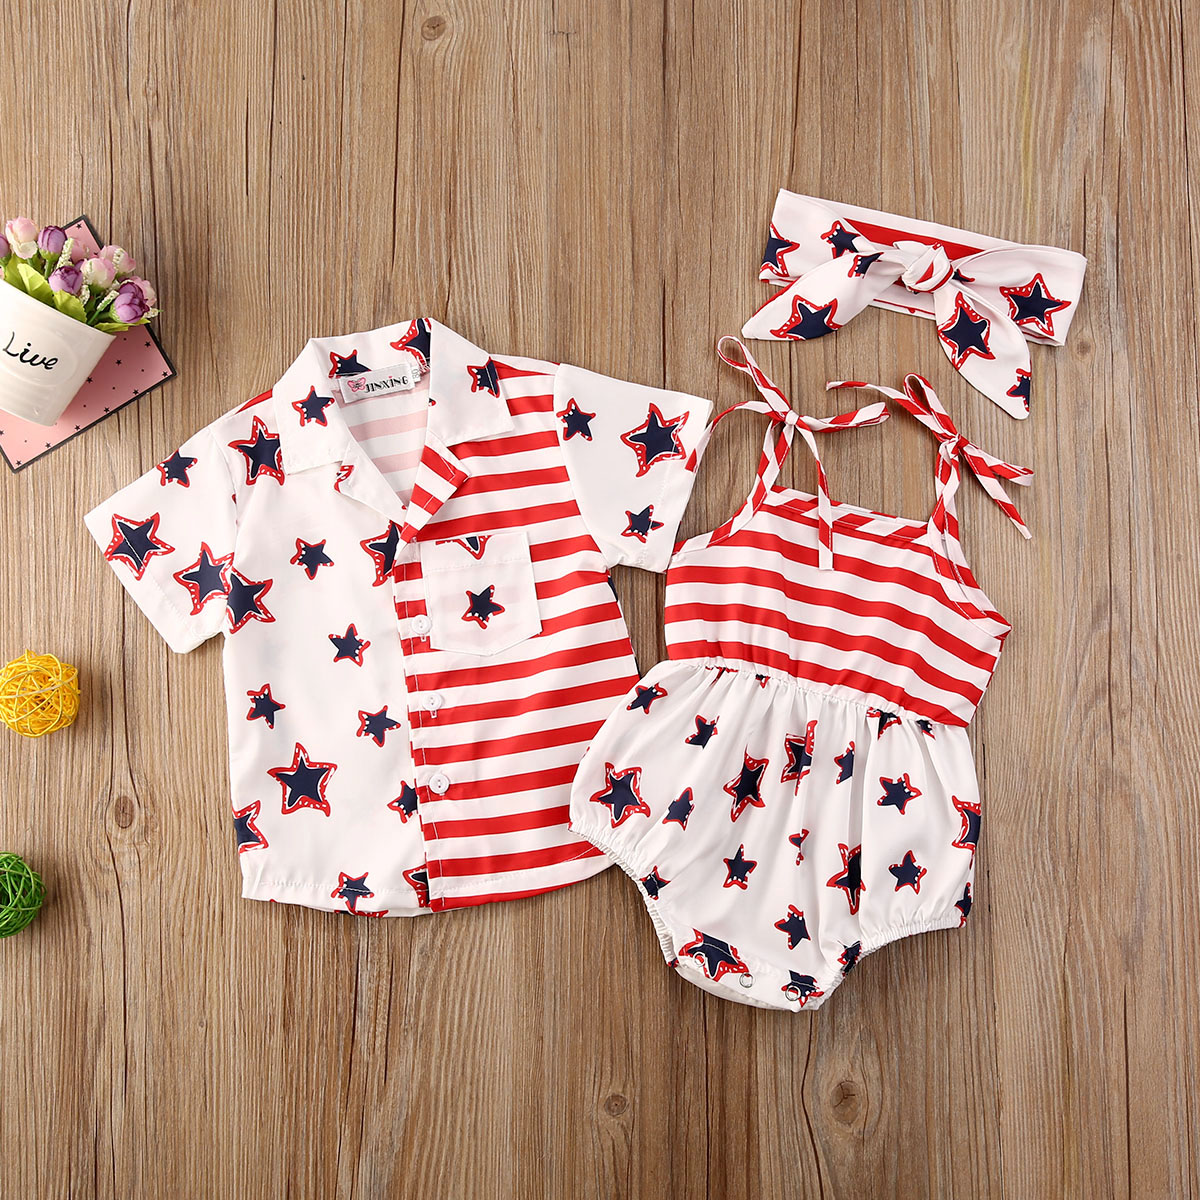 Kids Infant Baby Girls Independence Day 3Pcs Outfit Flared Sleeve Crop Top Shorts Headband Clothes Set